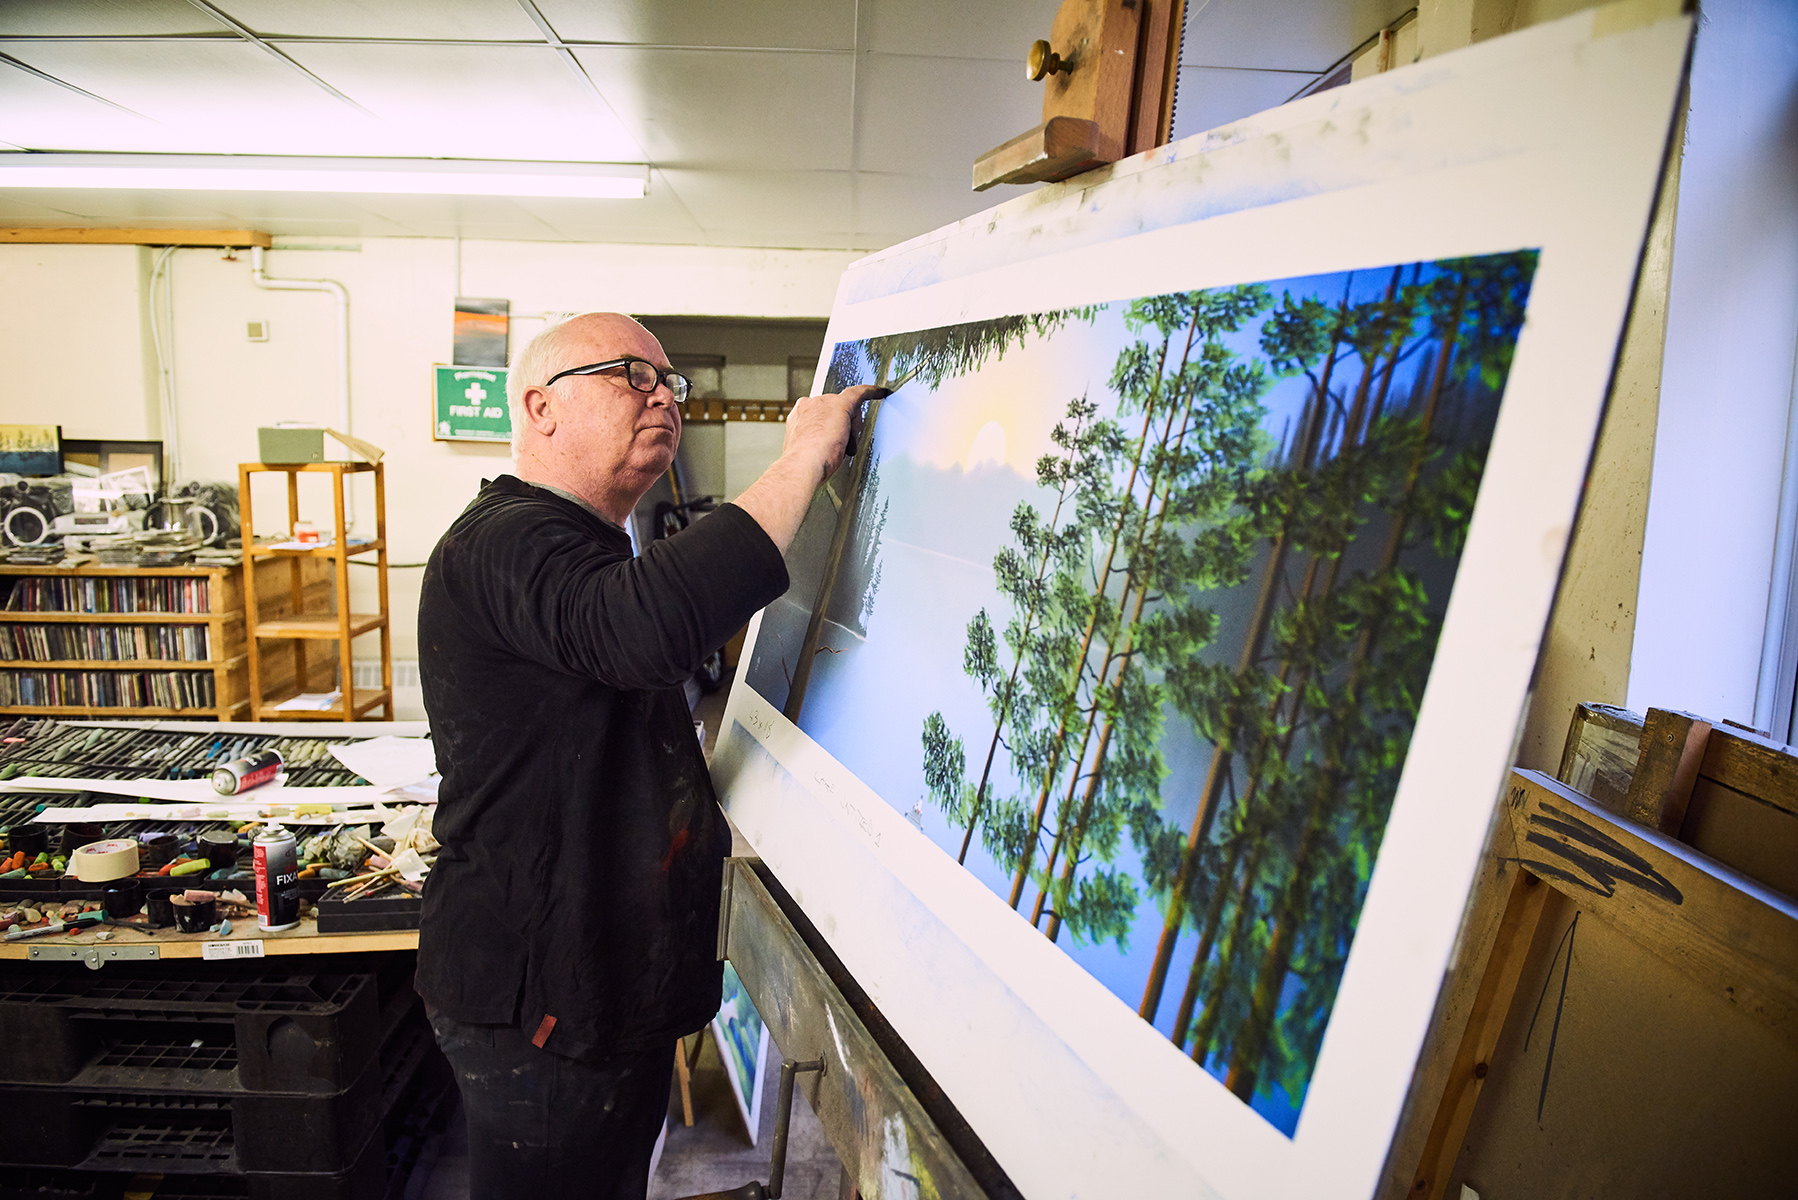 Artist Mackenzie Thorpe working on landscape painting